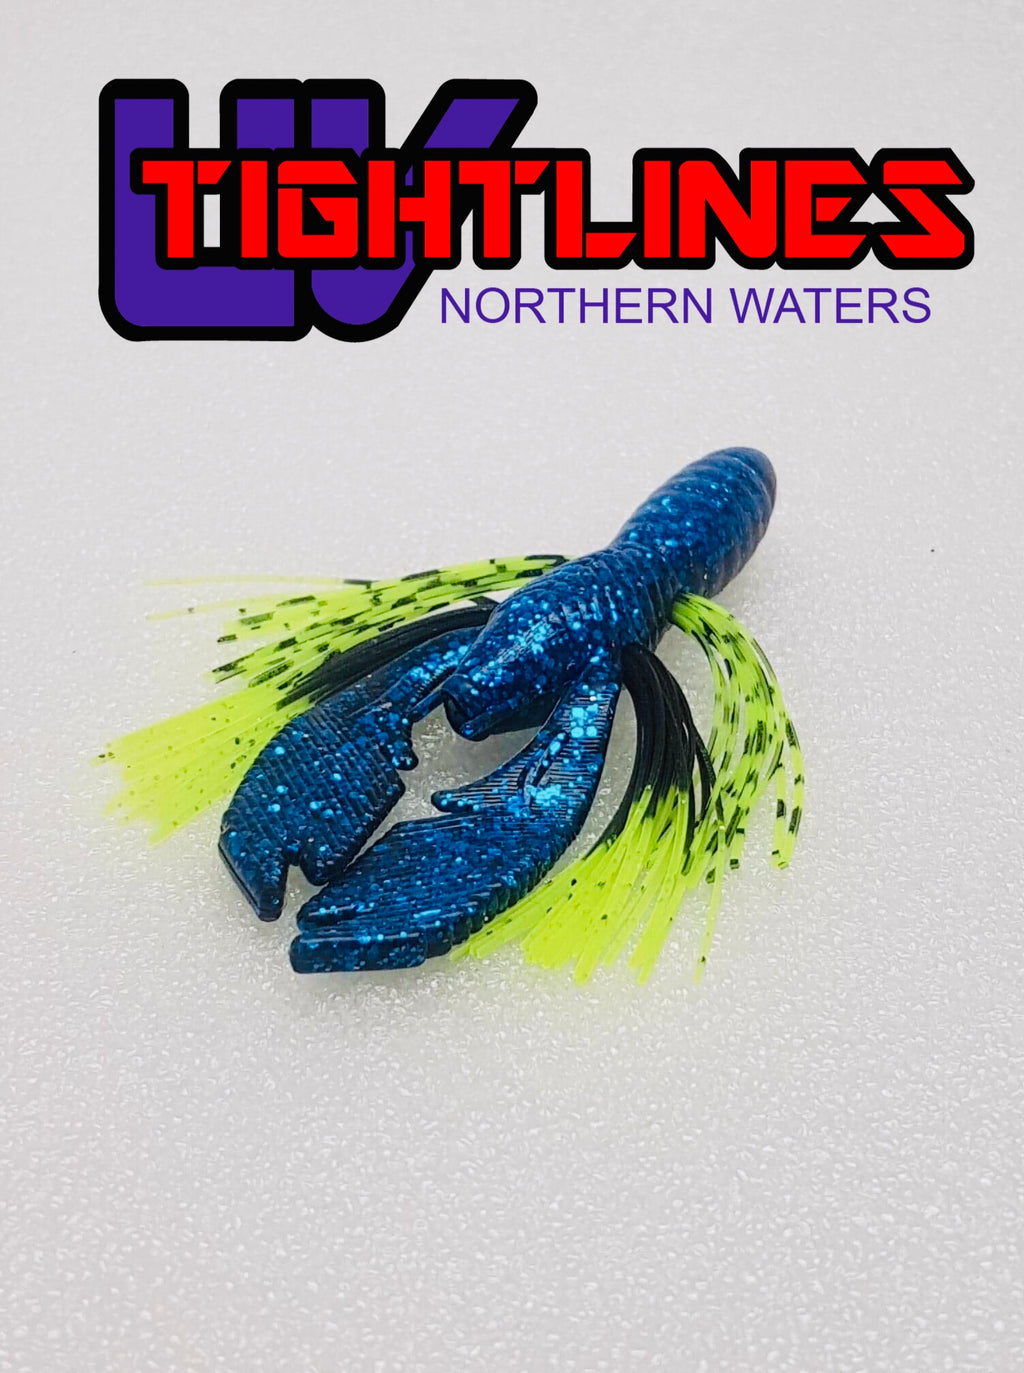 "Tightlines UV Hy Brid CRAW 4"" RATTL'N Blue Black with Chartreuse Tip/Tiger Soft Plastics"